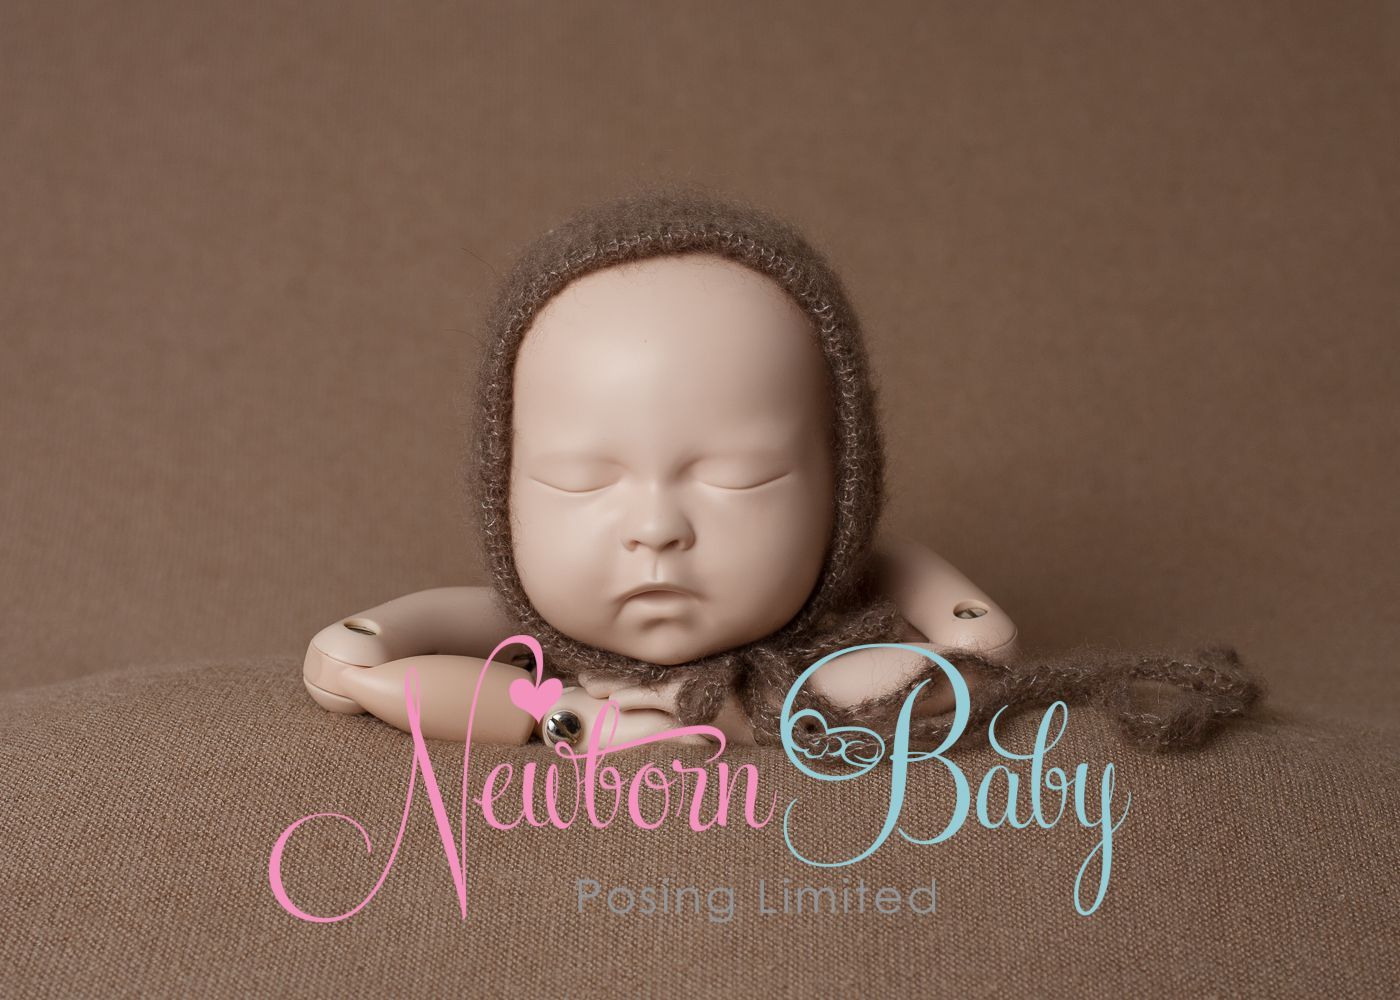 Awe Inspiring Frame For Beanbag Newborn Baby Posing Limited Bralicious Painted Fabric Chair Ideas Braliciousco